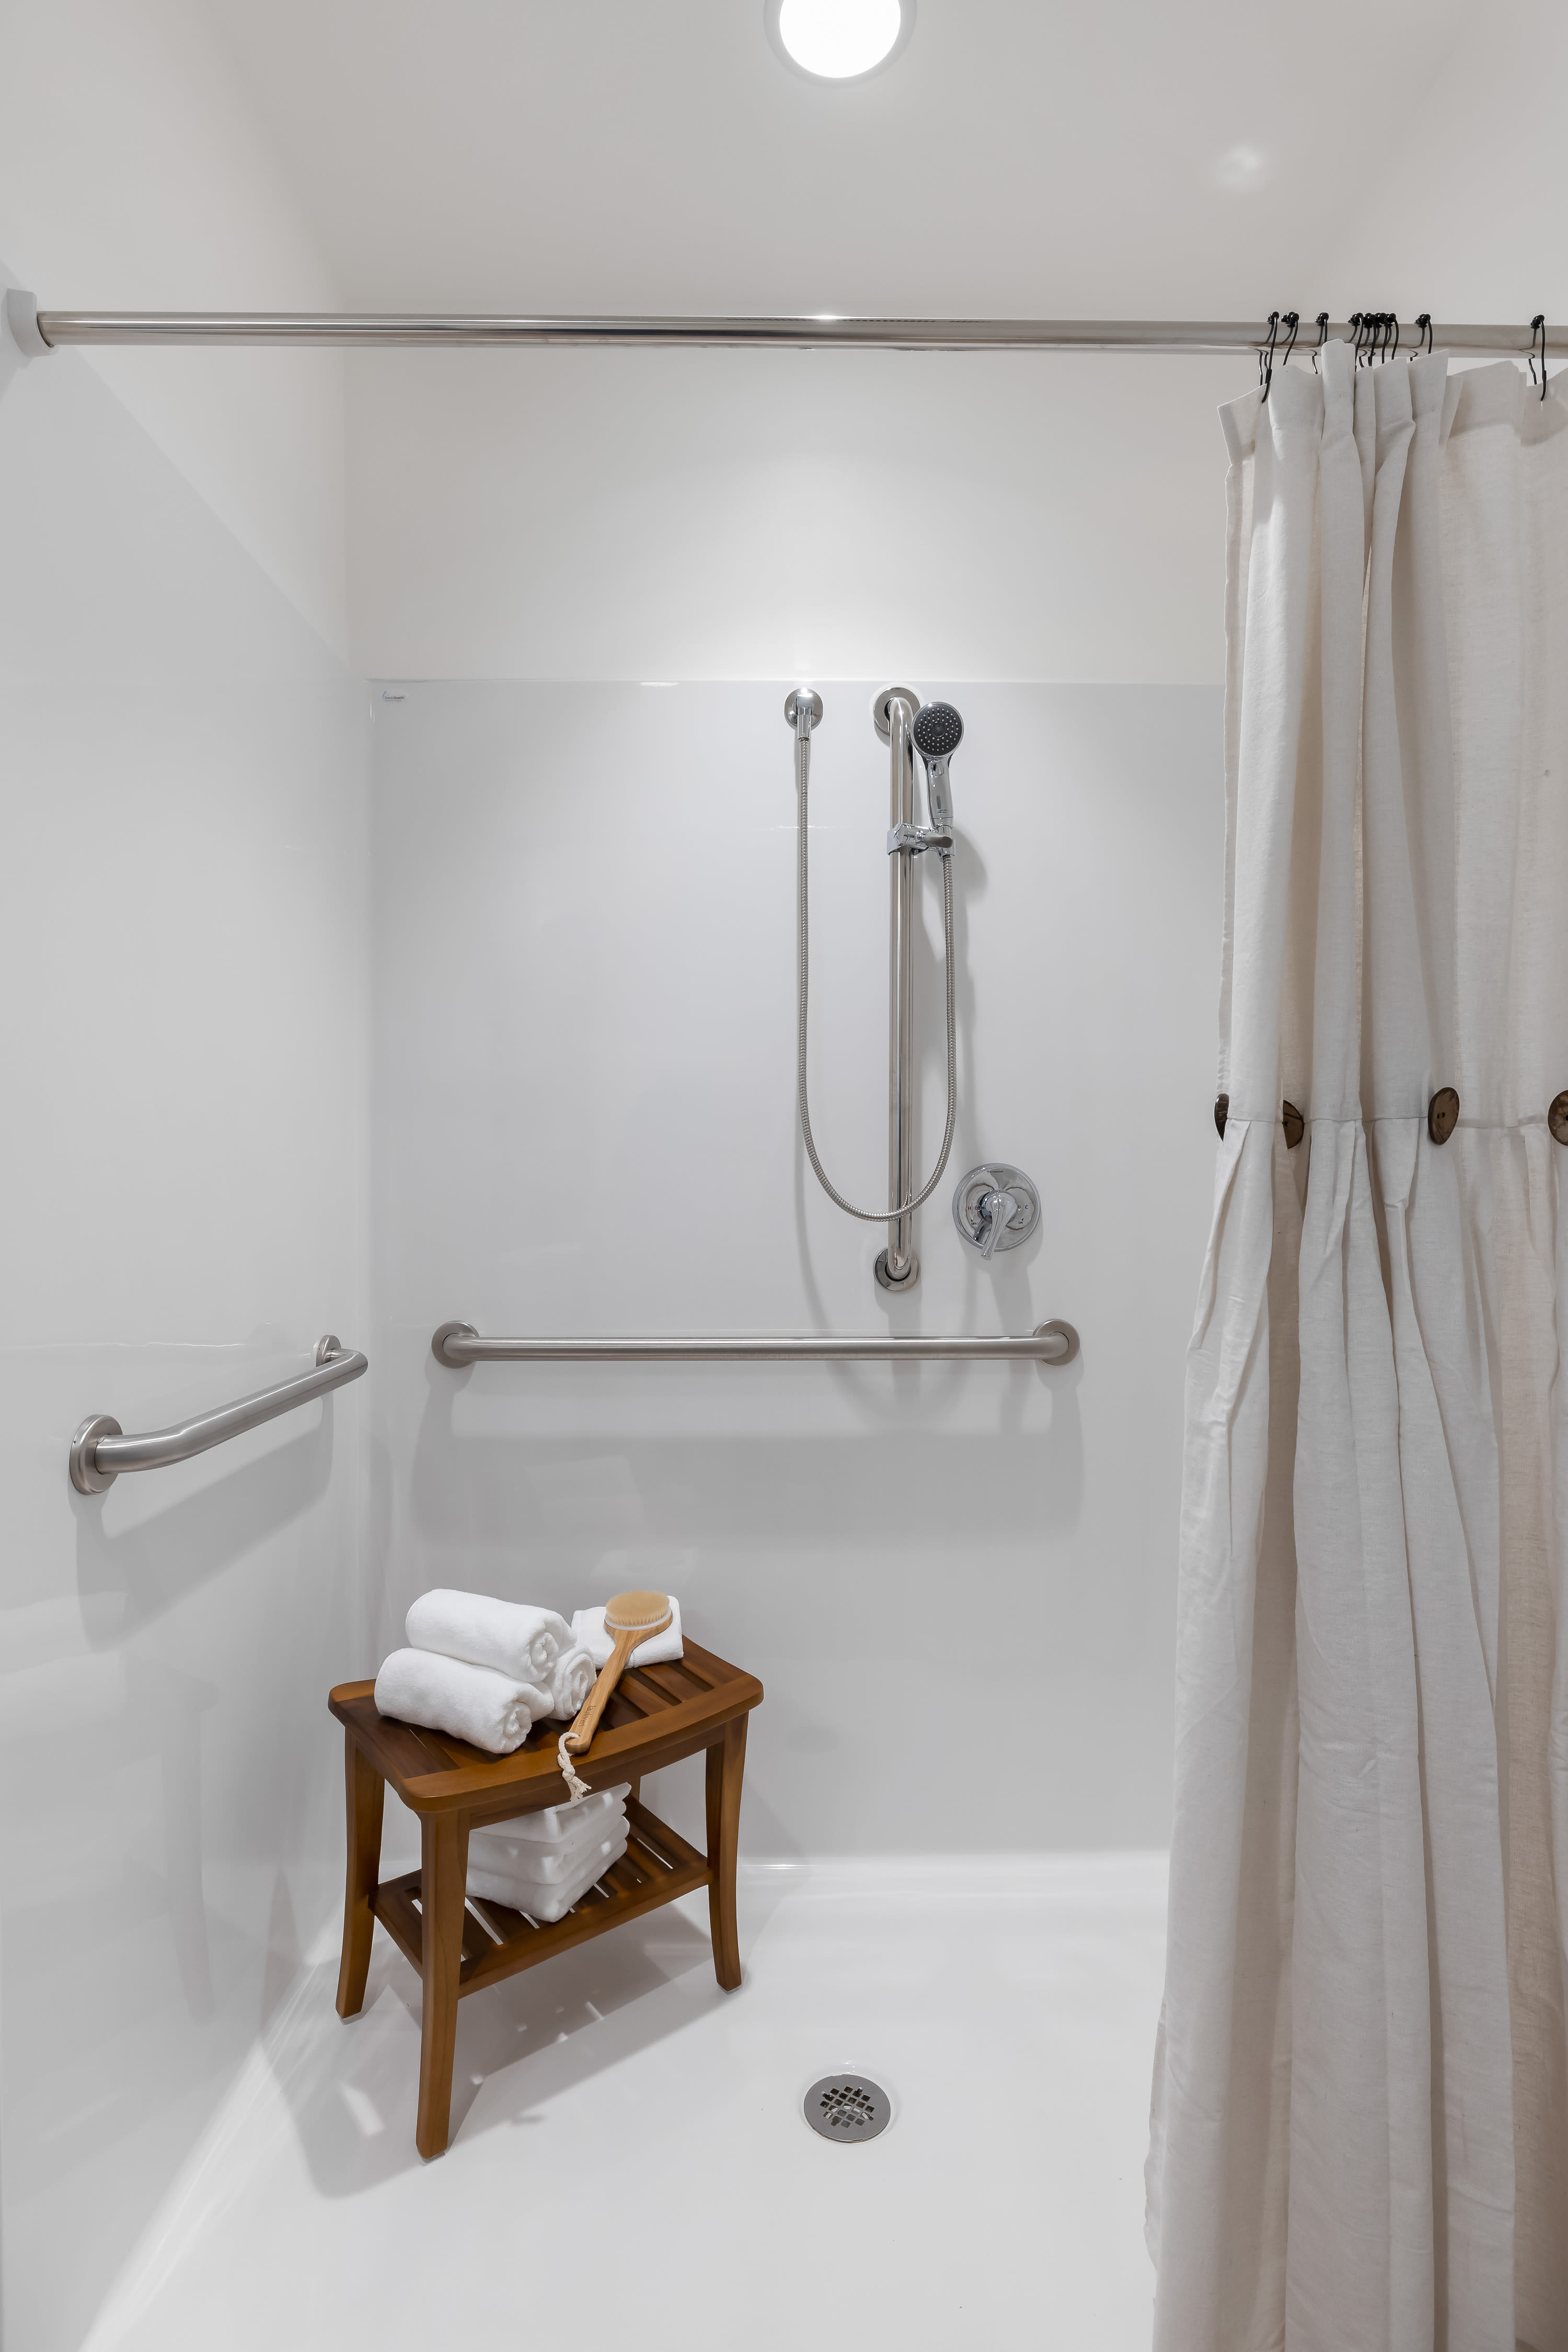 Shower at Anthology of King of Prussia – Now Open in King of Prussia, Pennsylvania